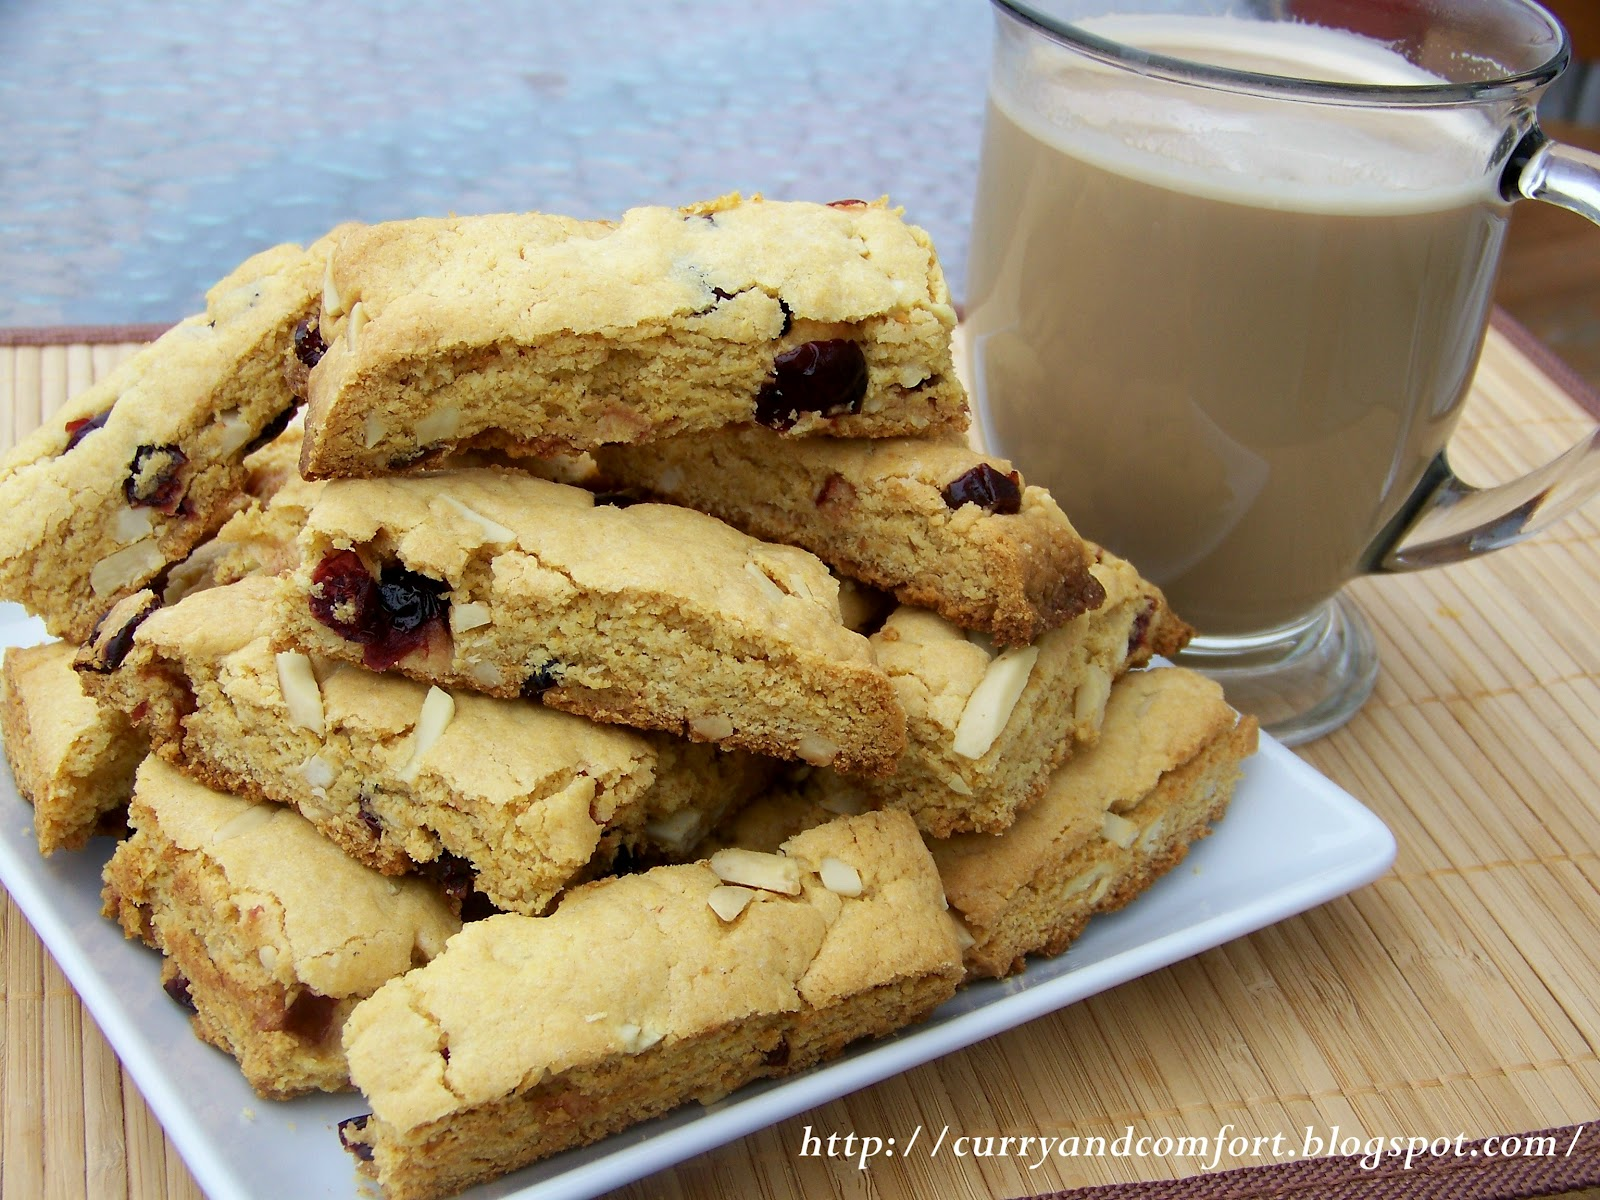 Curry and Comfort: Cranberry and Almond Biscotti